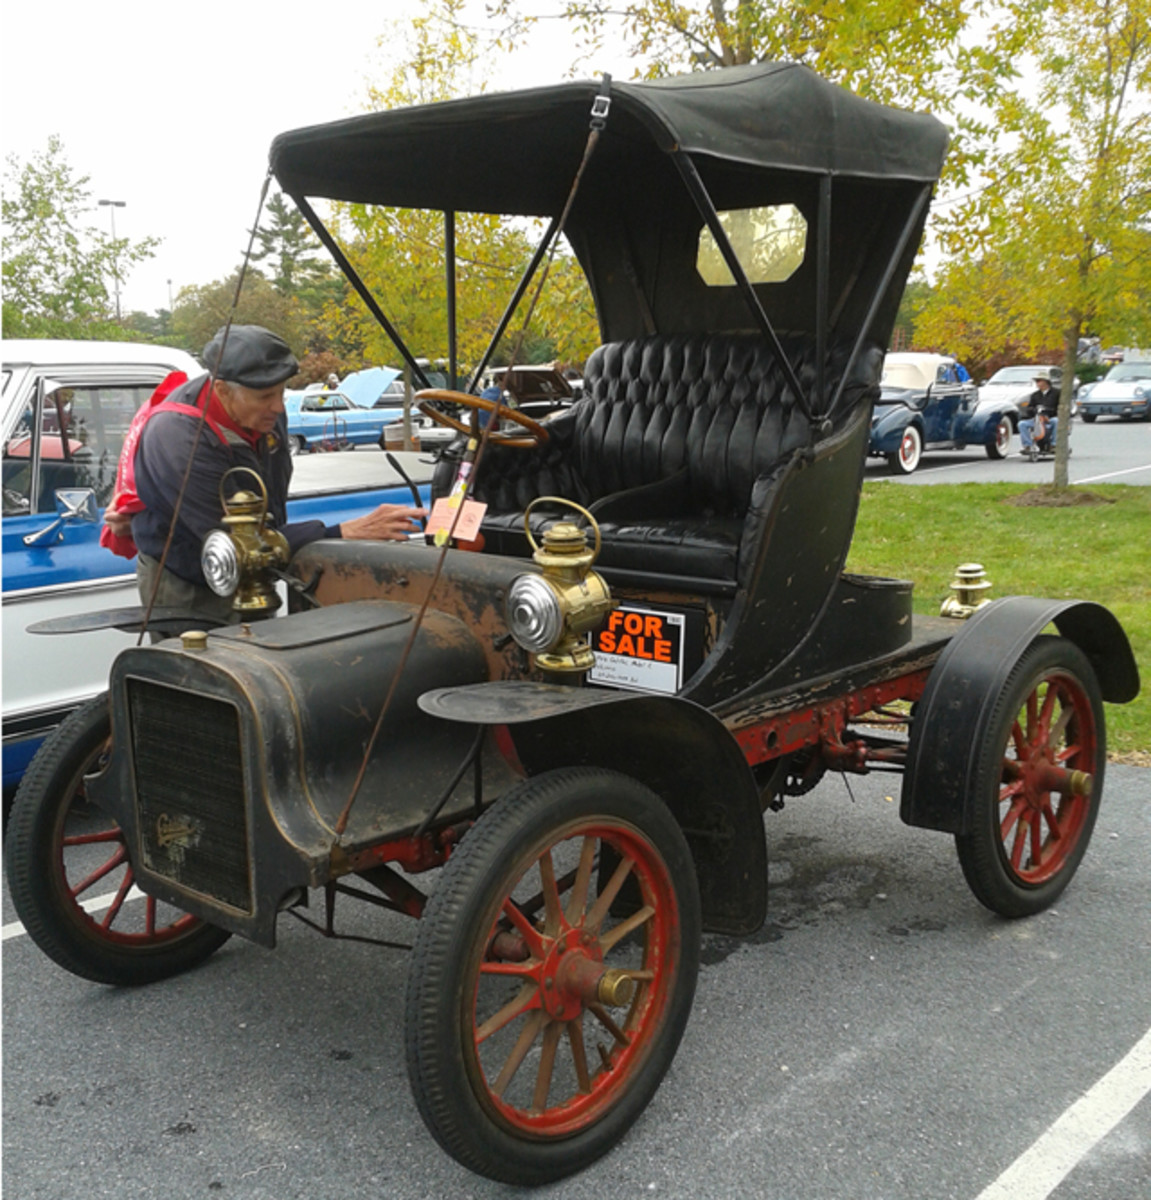 This driver-quality 1906 Cadillac Model K was available for $63,000 in the car corral. Its great patina made it a good contender for Horseless Carriage Club of America tours.